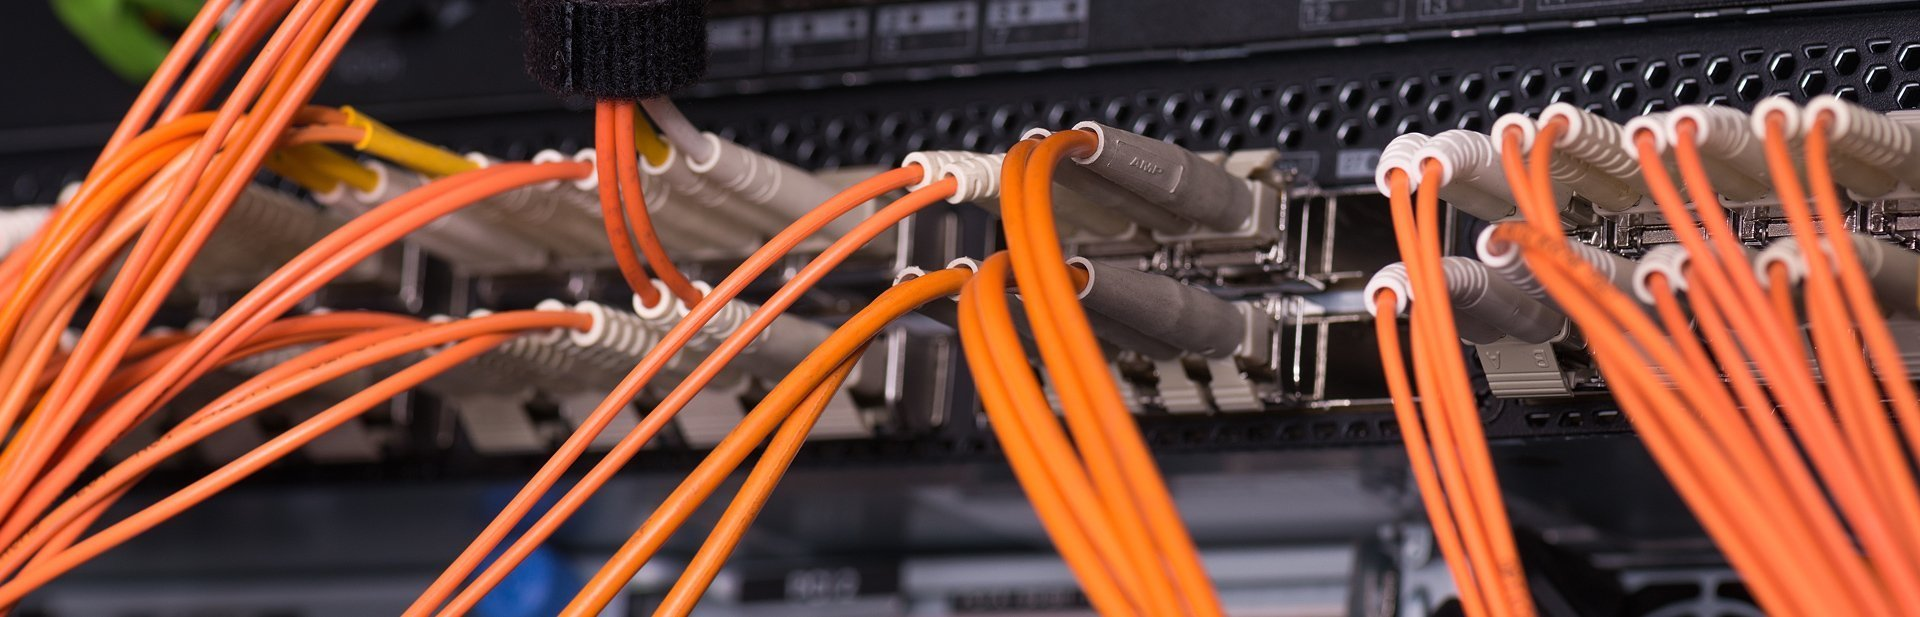 Structured Cabling Services In Norfolk Cable Solutions Cat5e Patch Cables